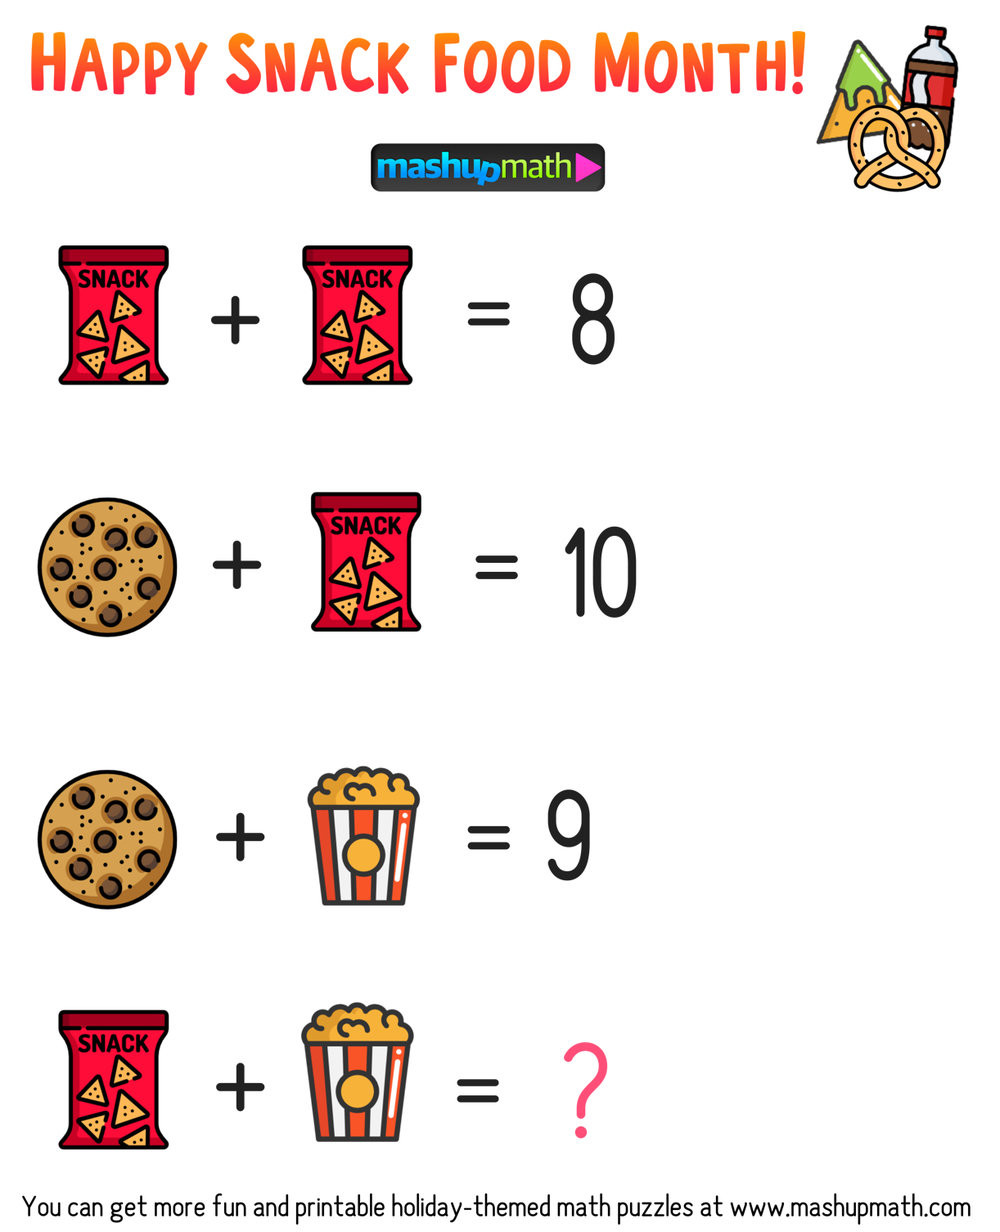 6th Grade Math Puzzles Printable Free Math Brain Teaser Puzzles for Kids In Grades 1 6 to